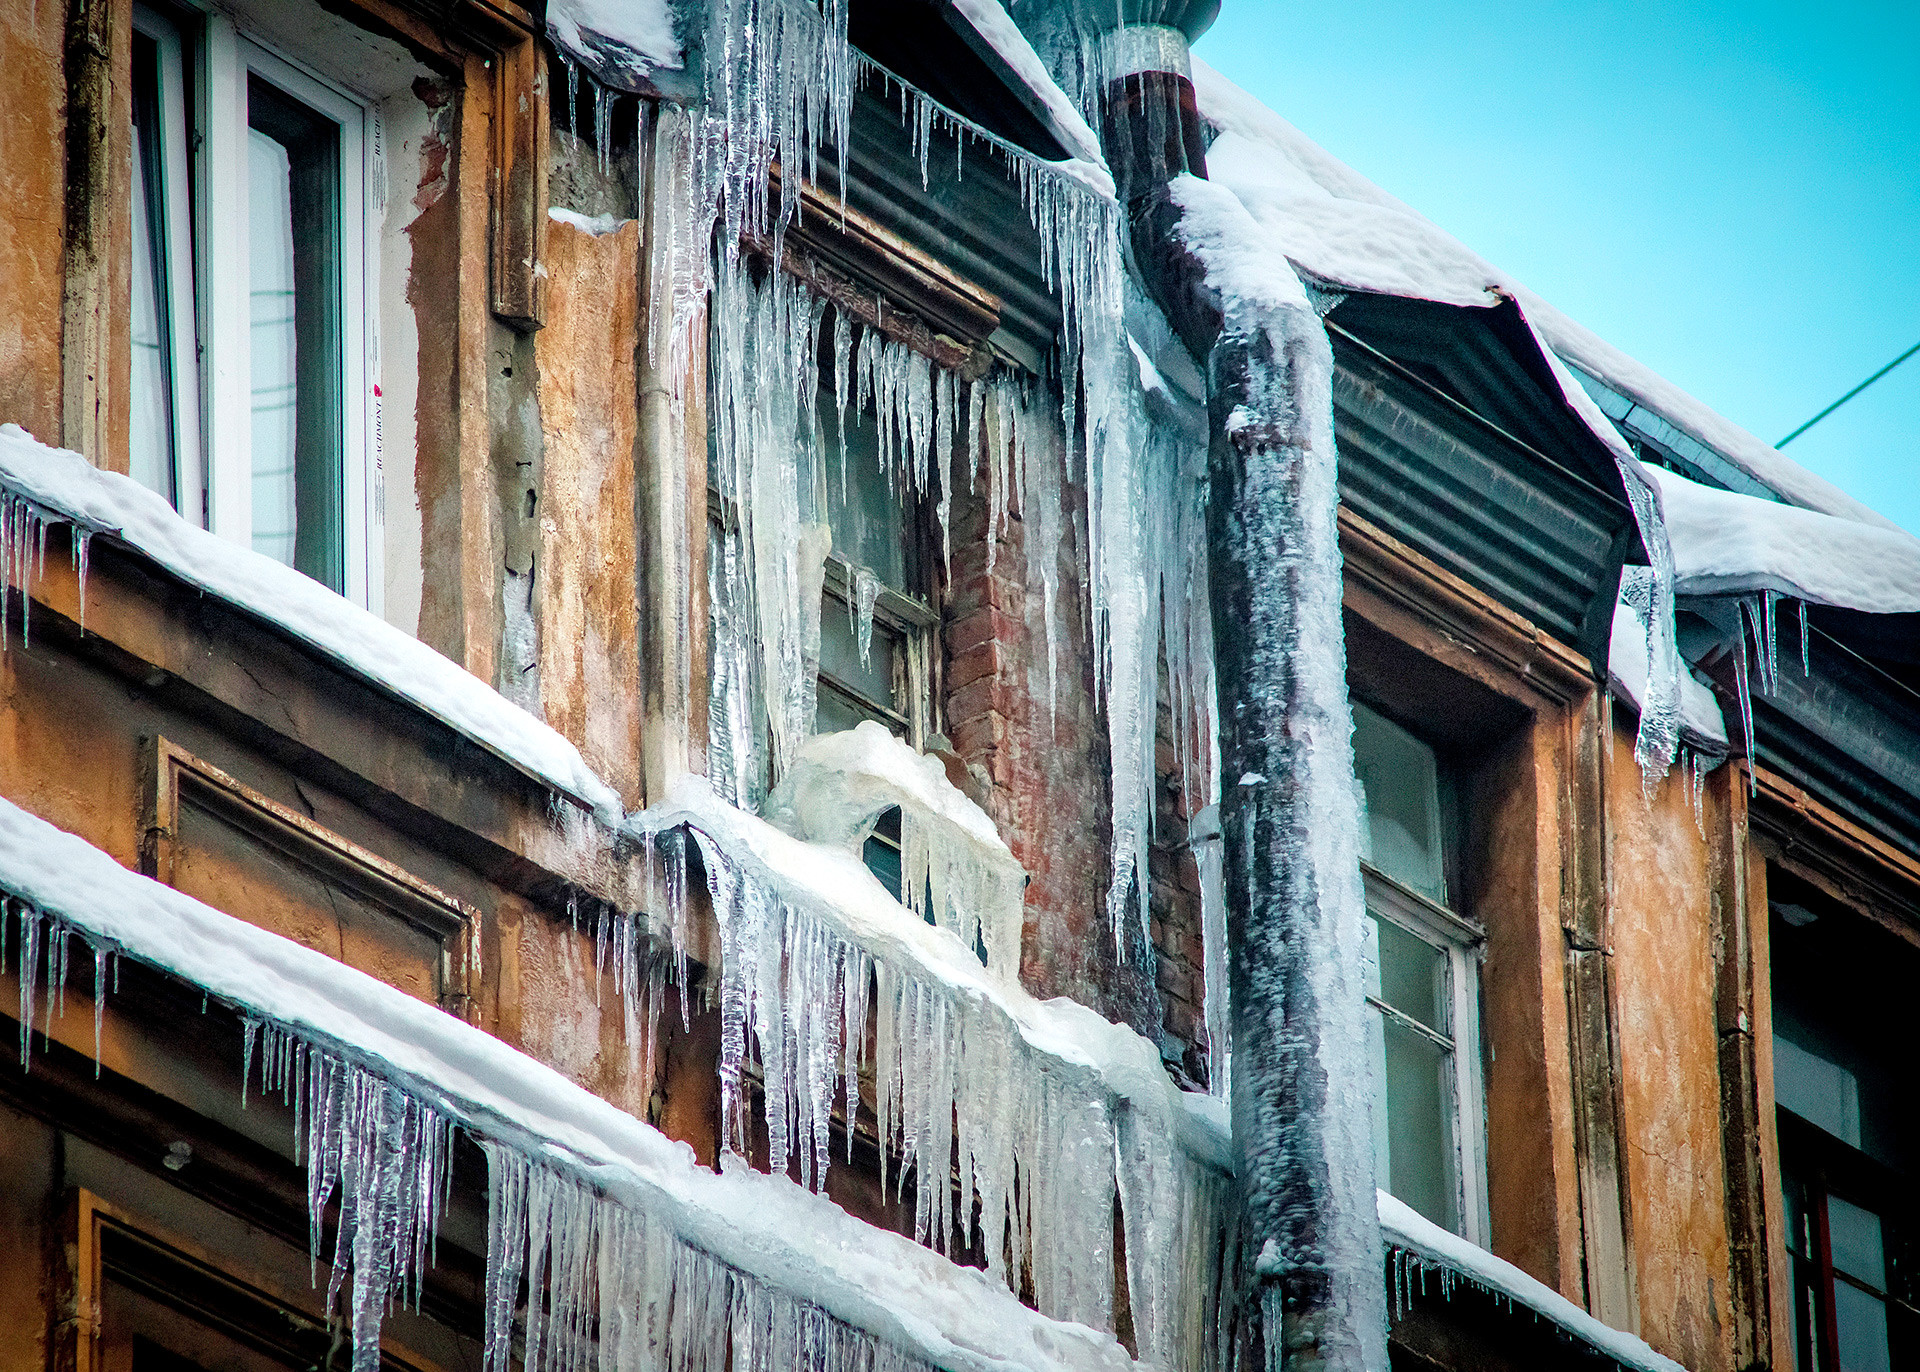 Lifehack: If you see icicles like that, it's probably the best to stay away from them.